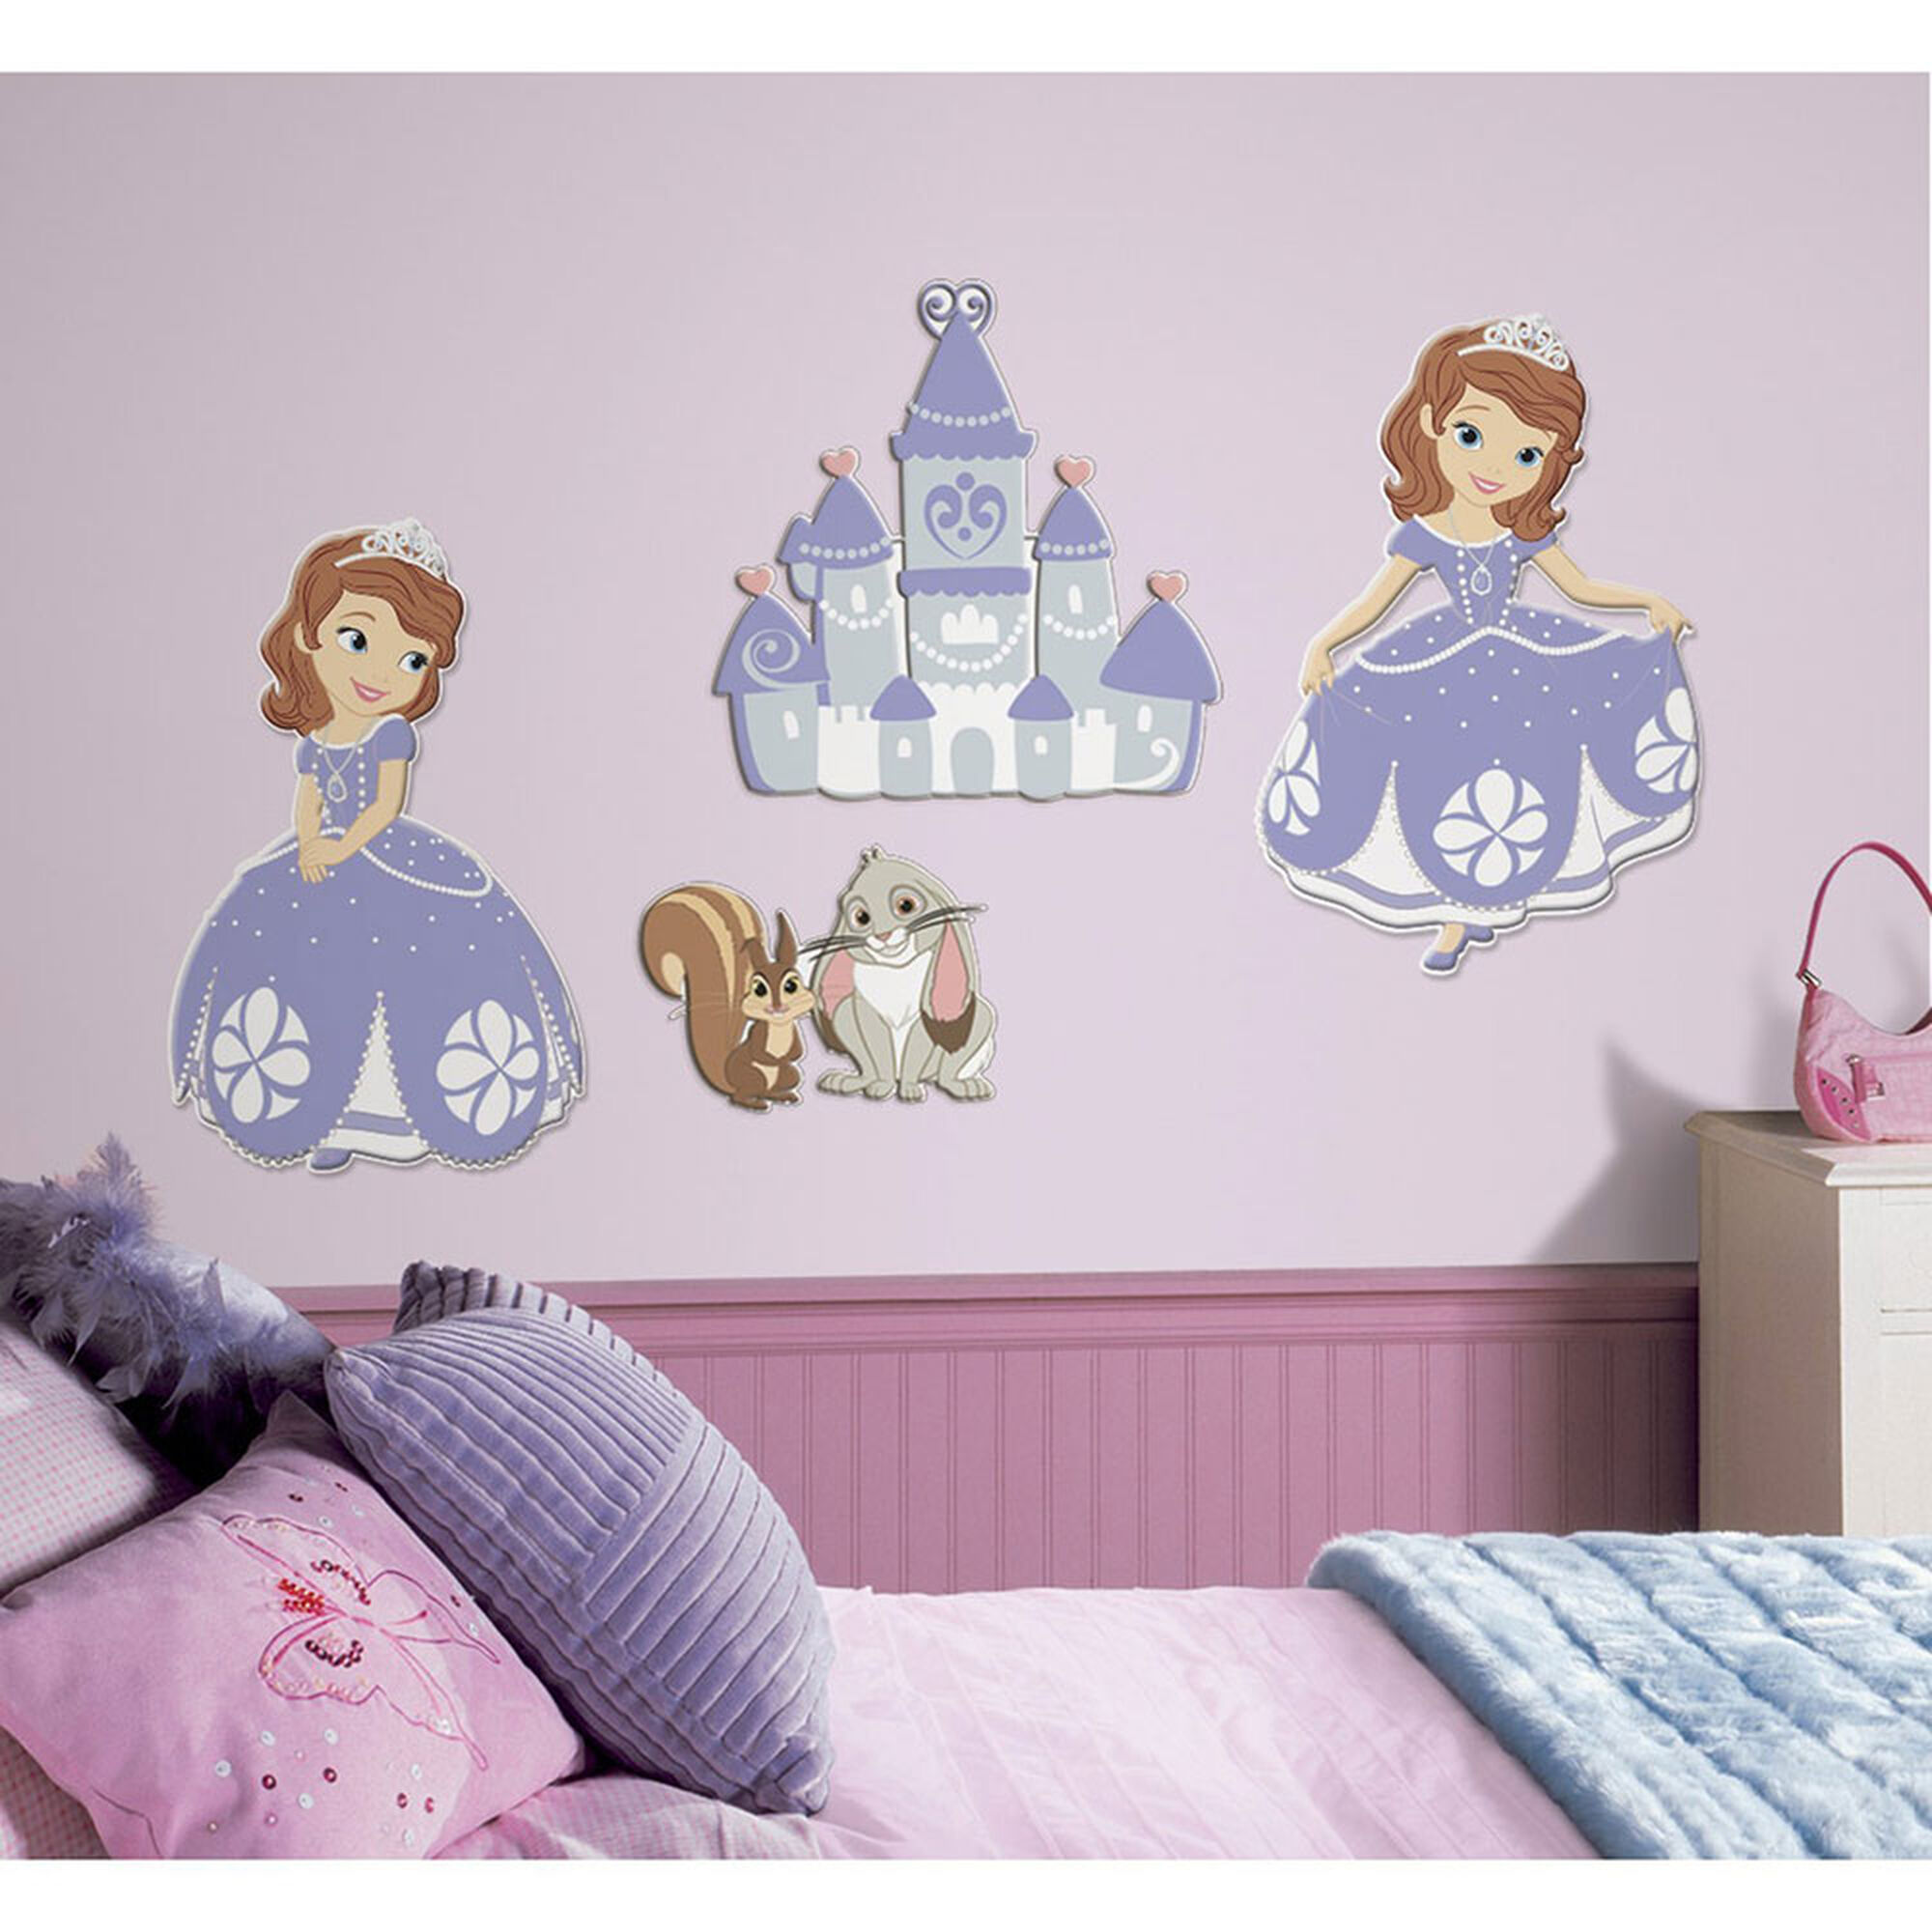 Sofia the first wall decals claires sofia the first wall decals amipublicfo Images